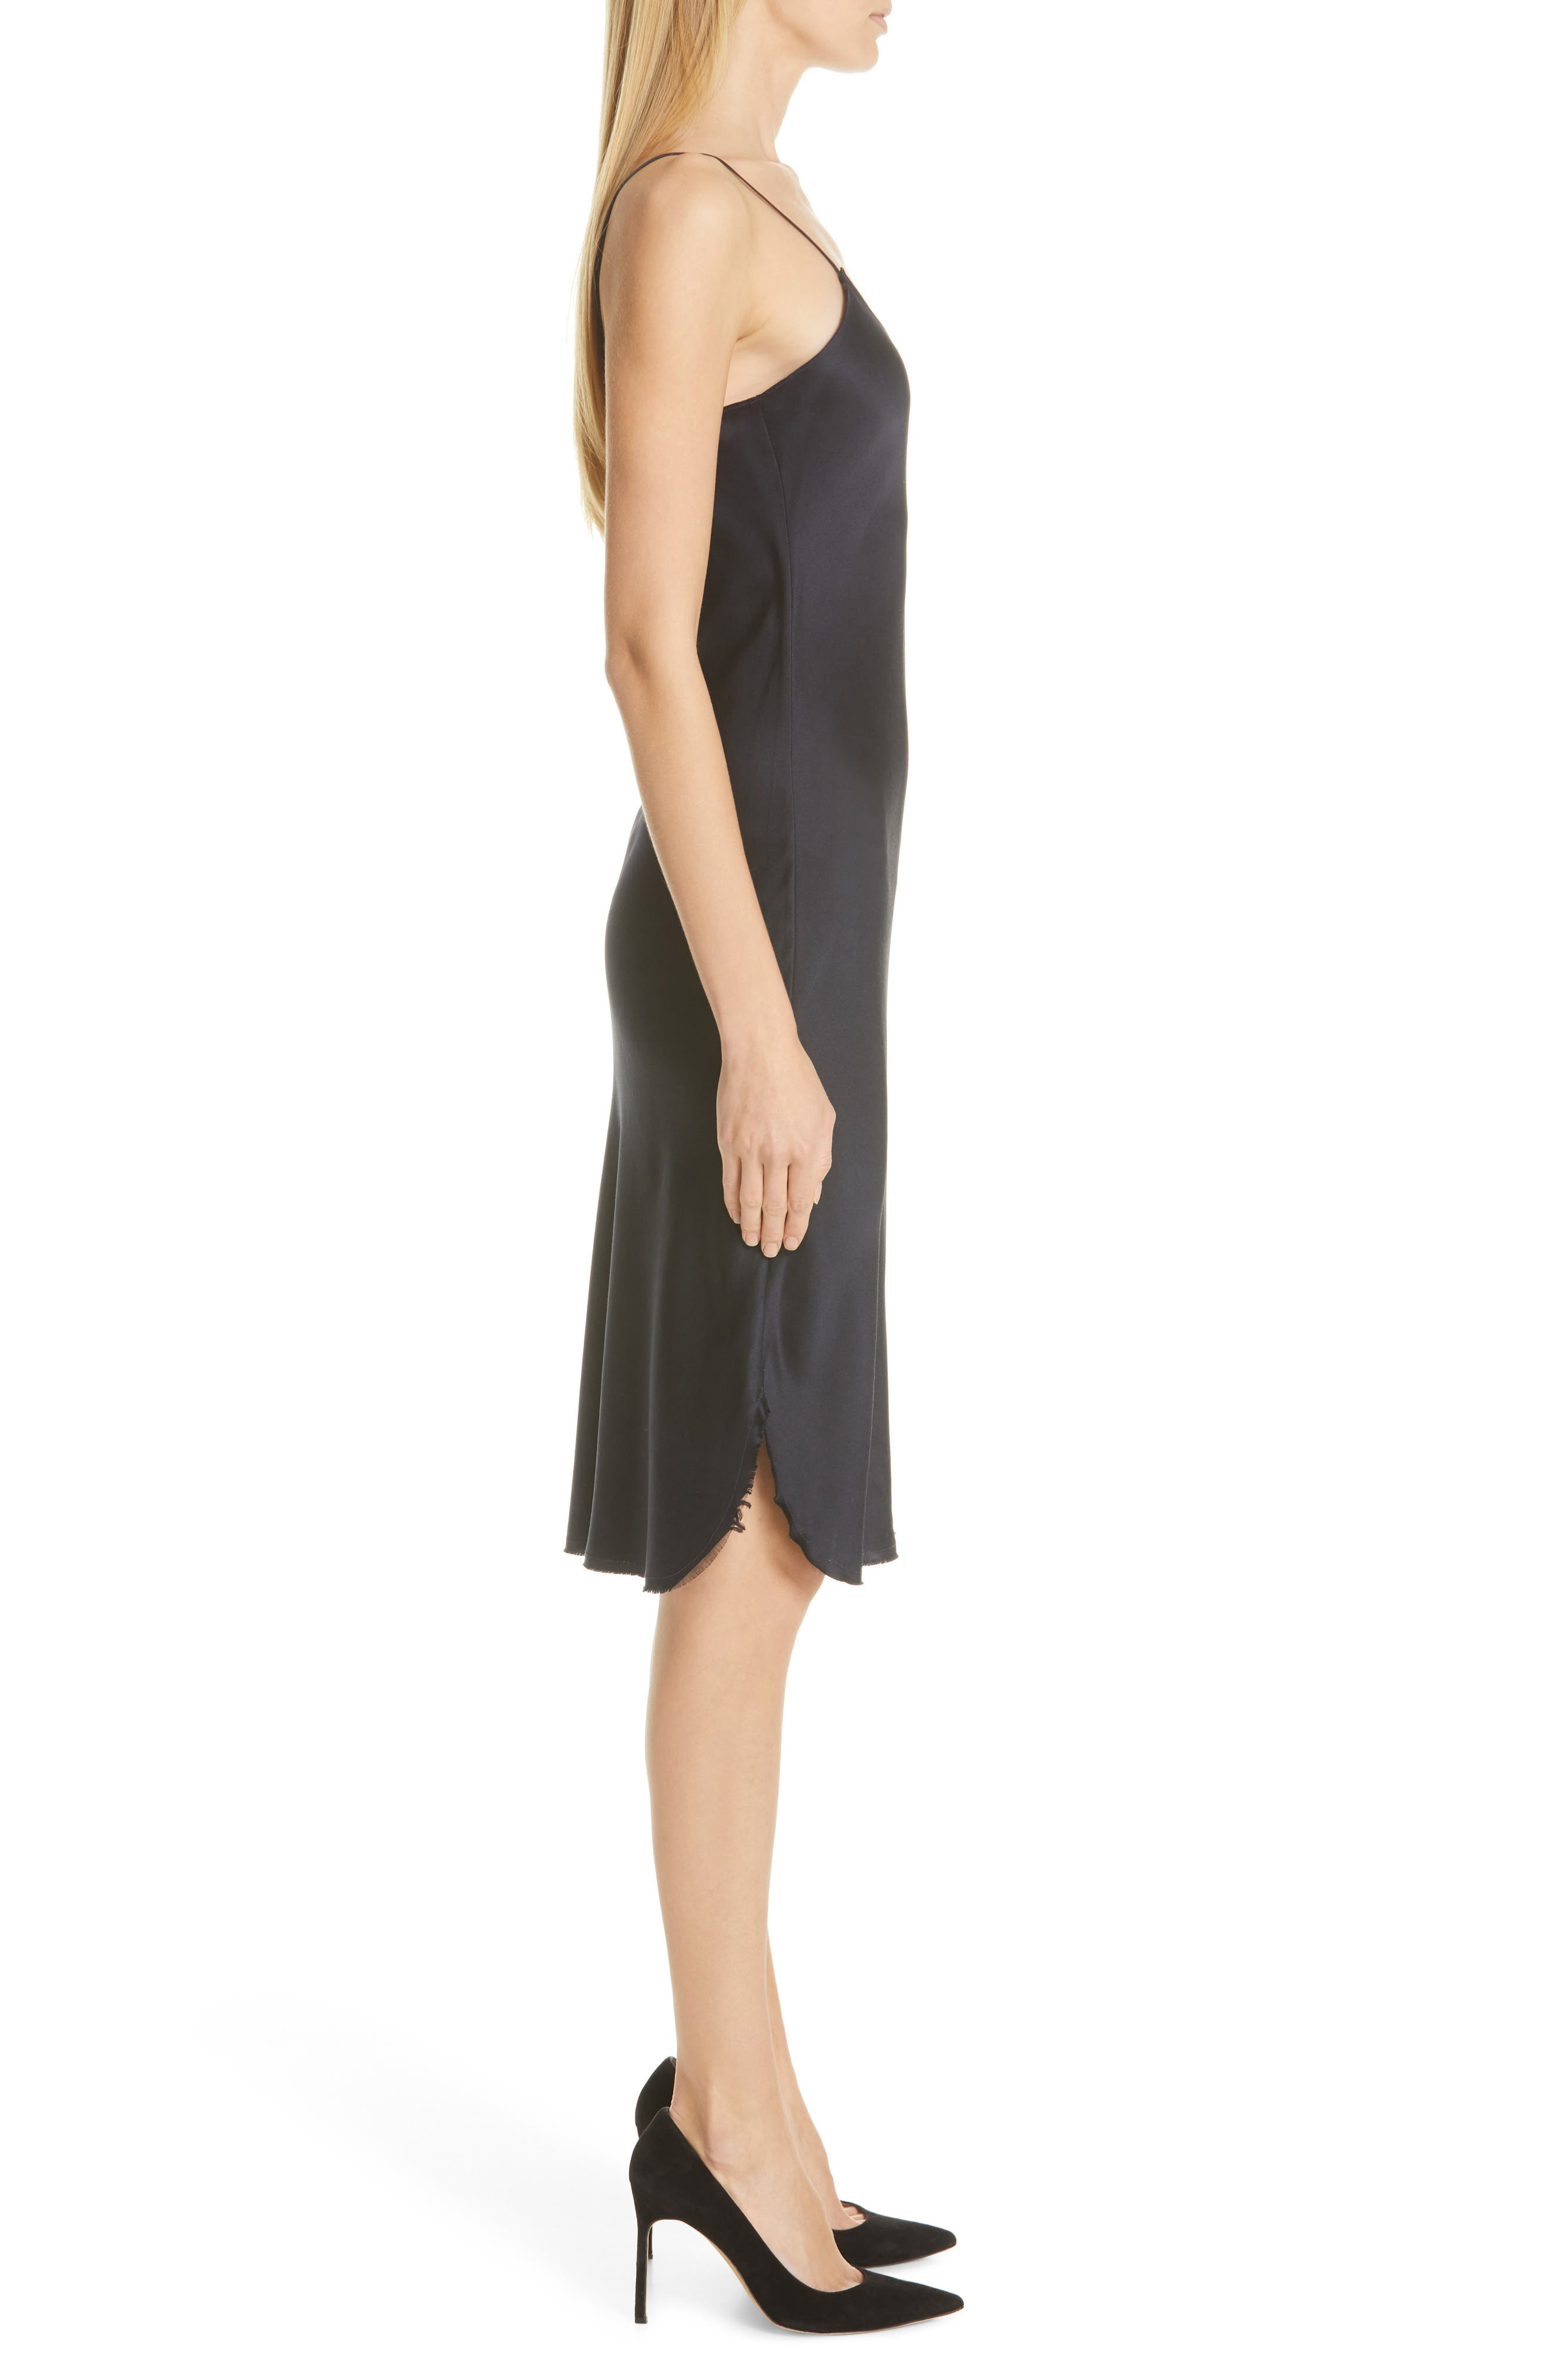 NILI LOTAN, Silk Slipdress, Alternate thumbnail 3, color, DARK NAVY